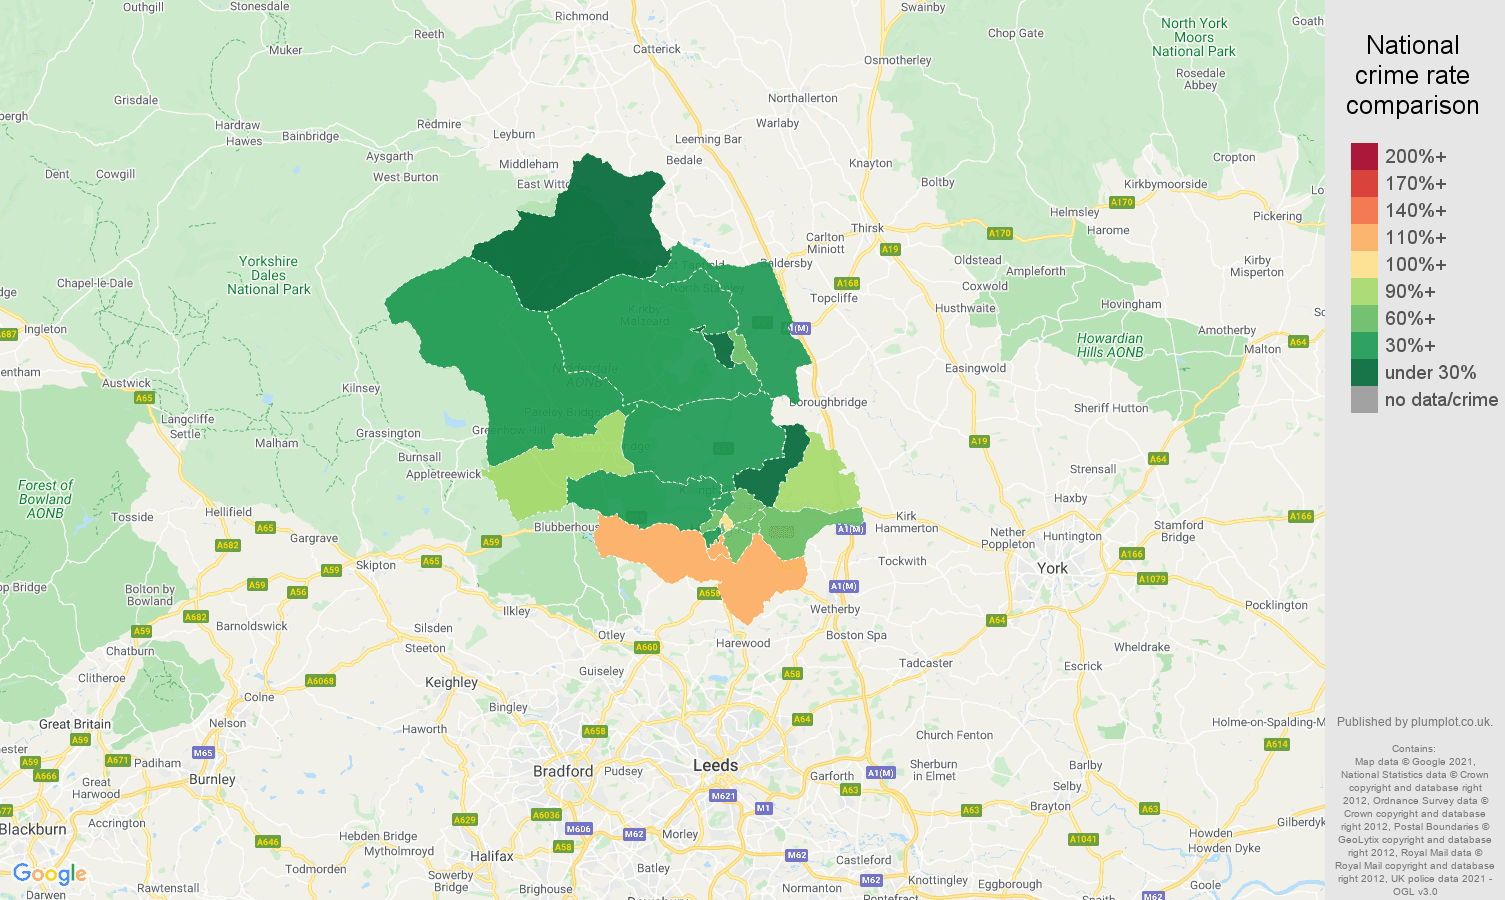 Harrogate burglary crime rate comparison map